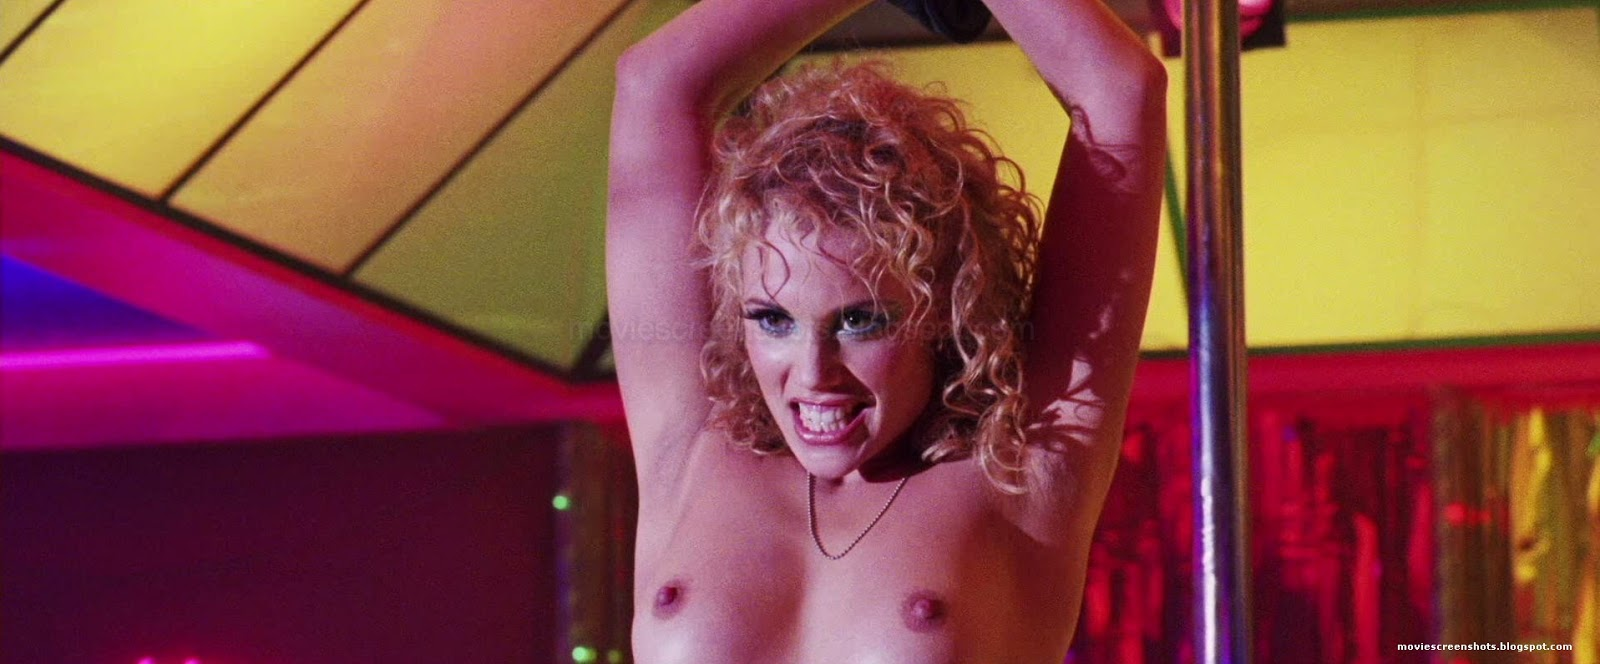 Elizabeth Berkley Wild Sex In Showgirls Picture